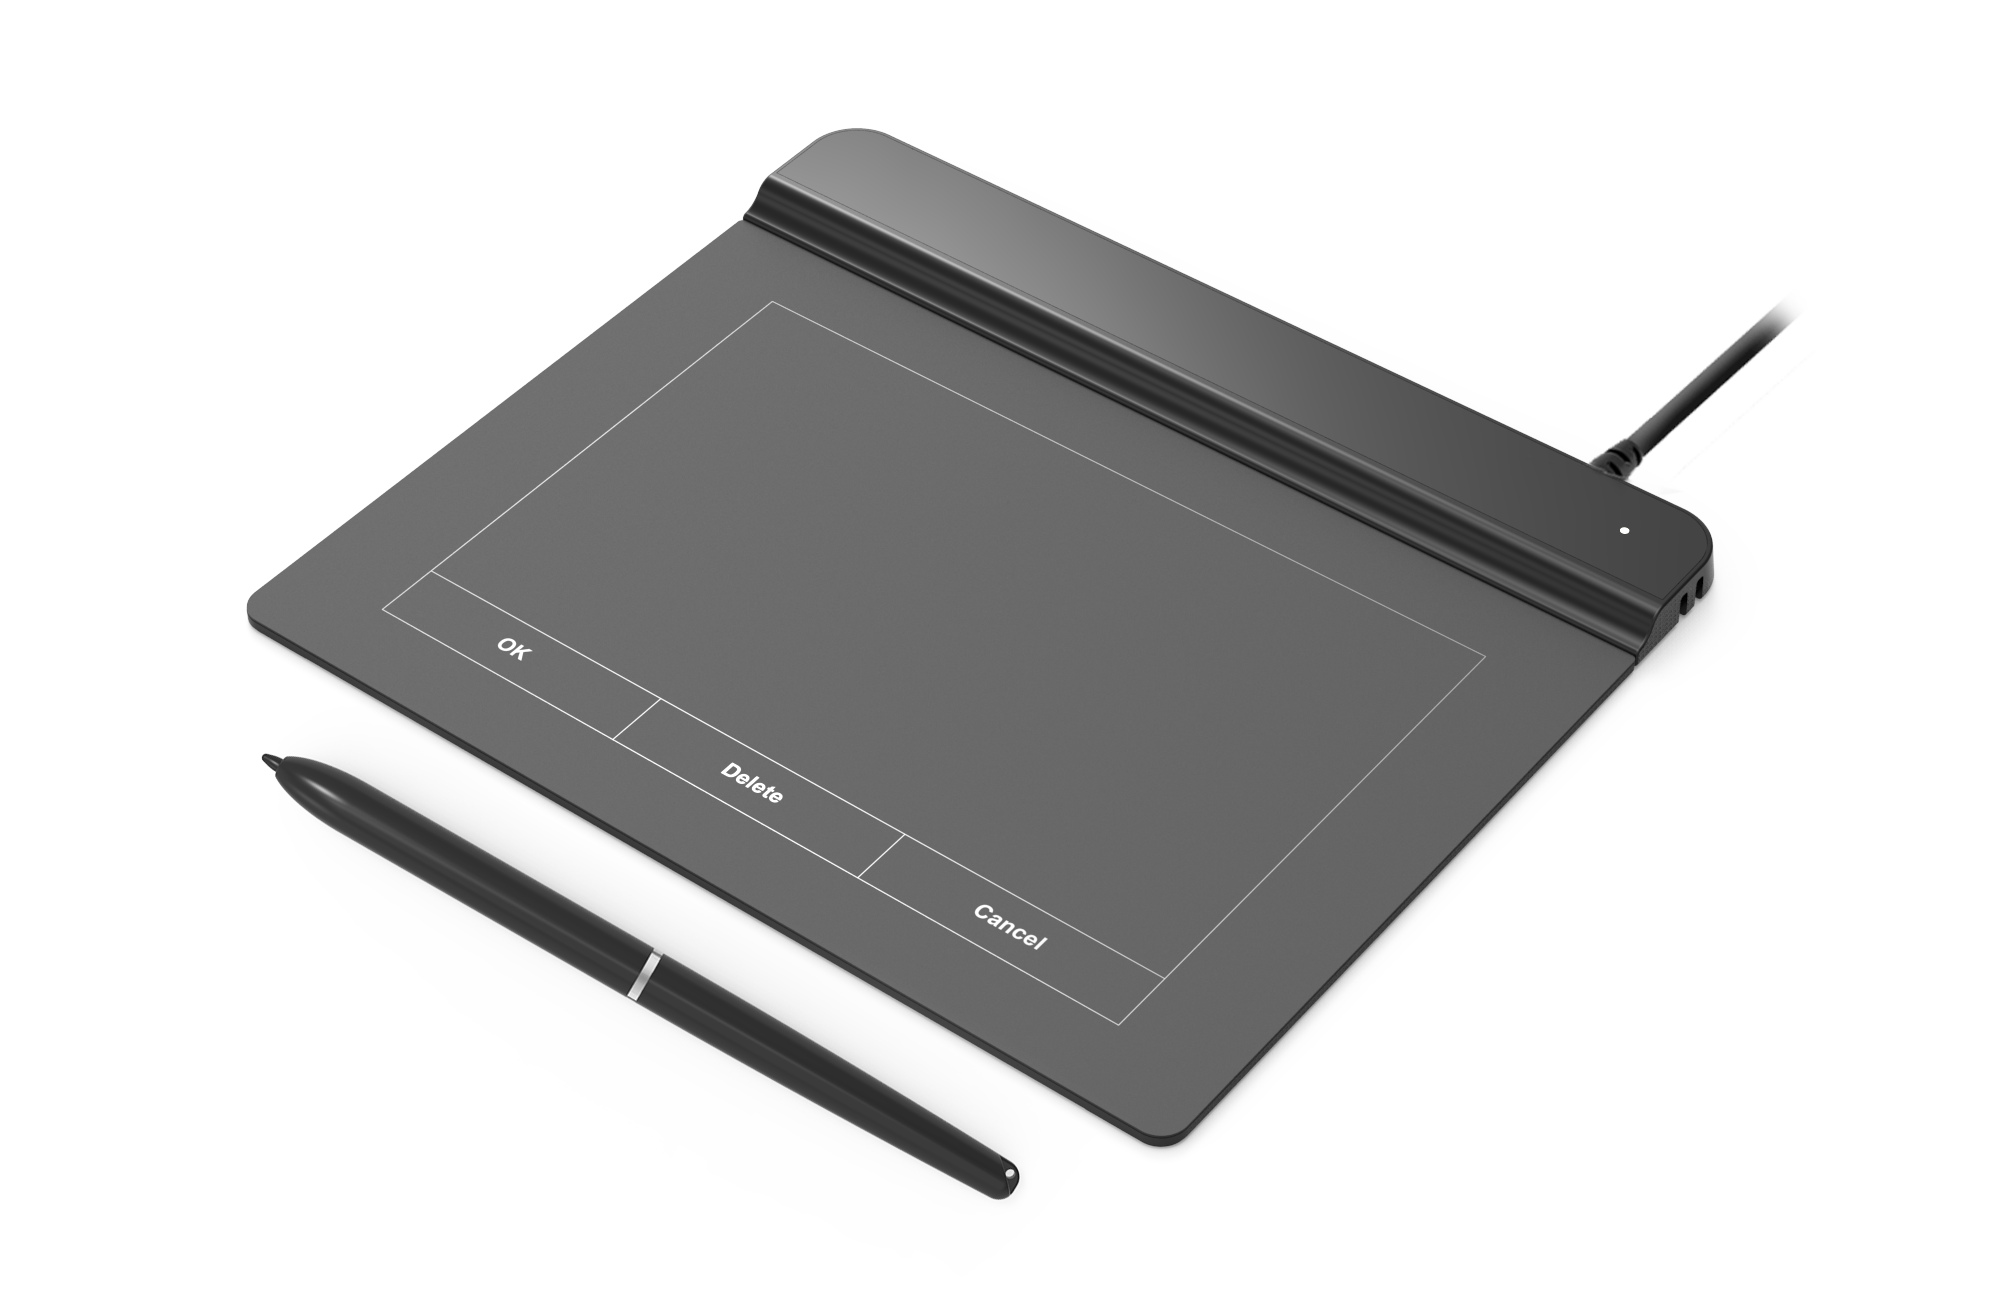 Ugee-Professional Ugee Brand Trendy Best Best Tablet For Writing Supplier-2